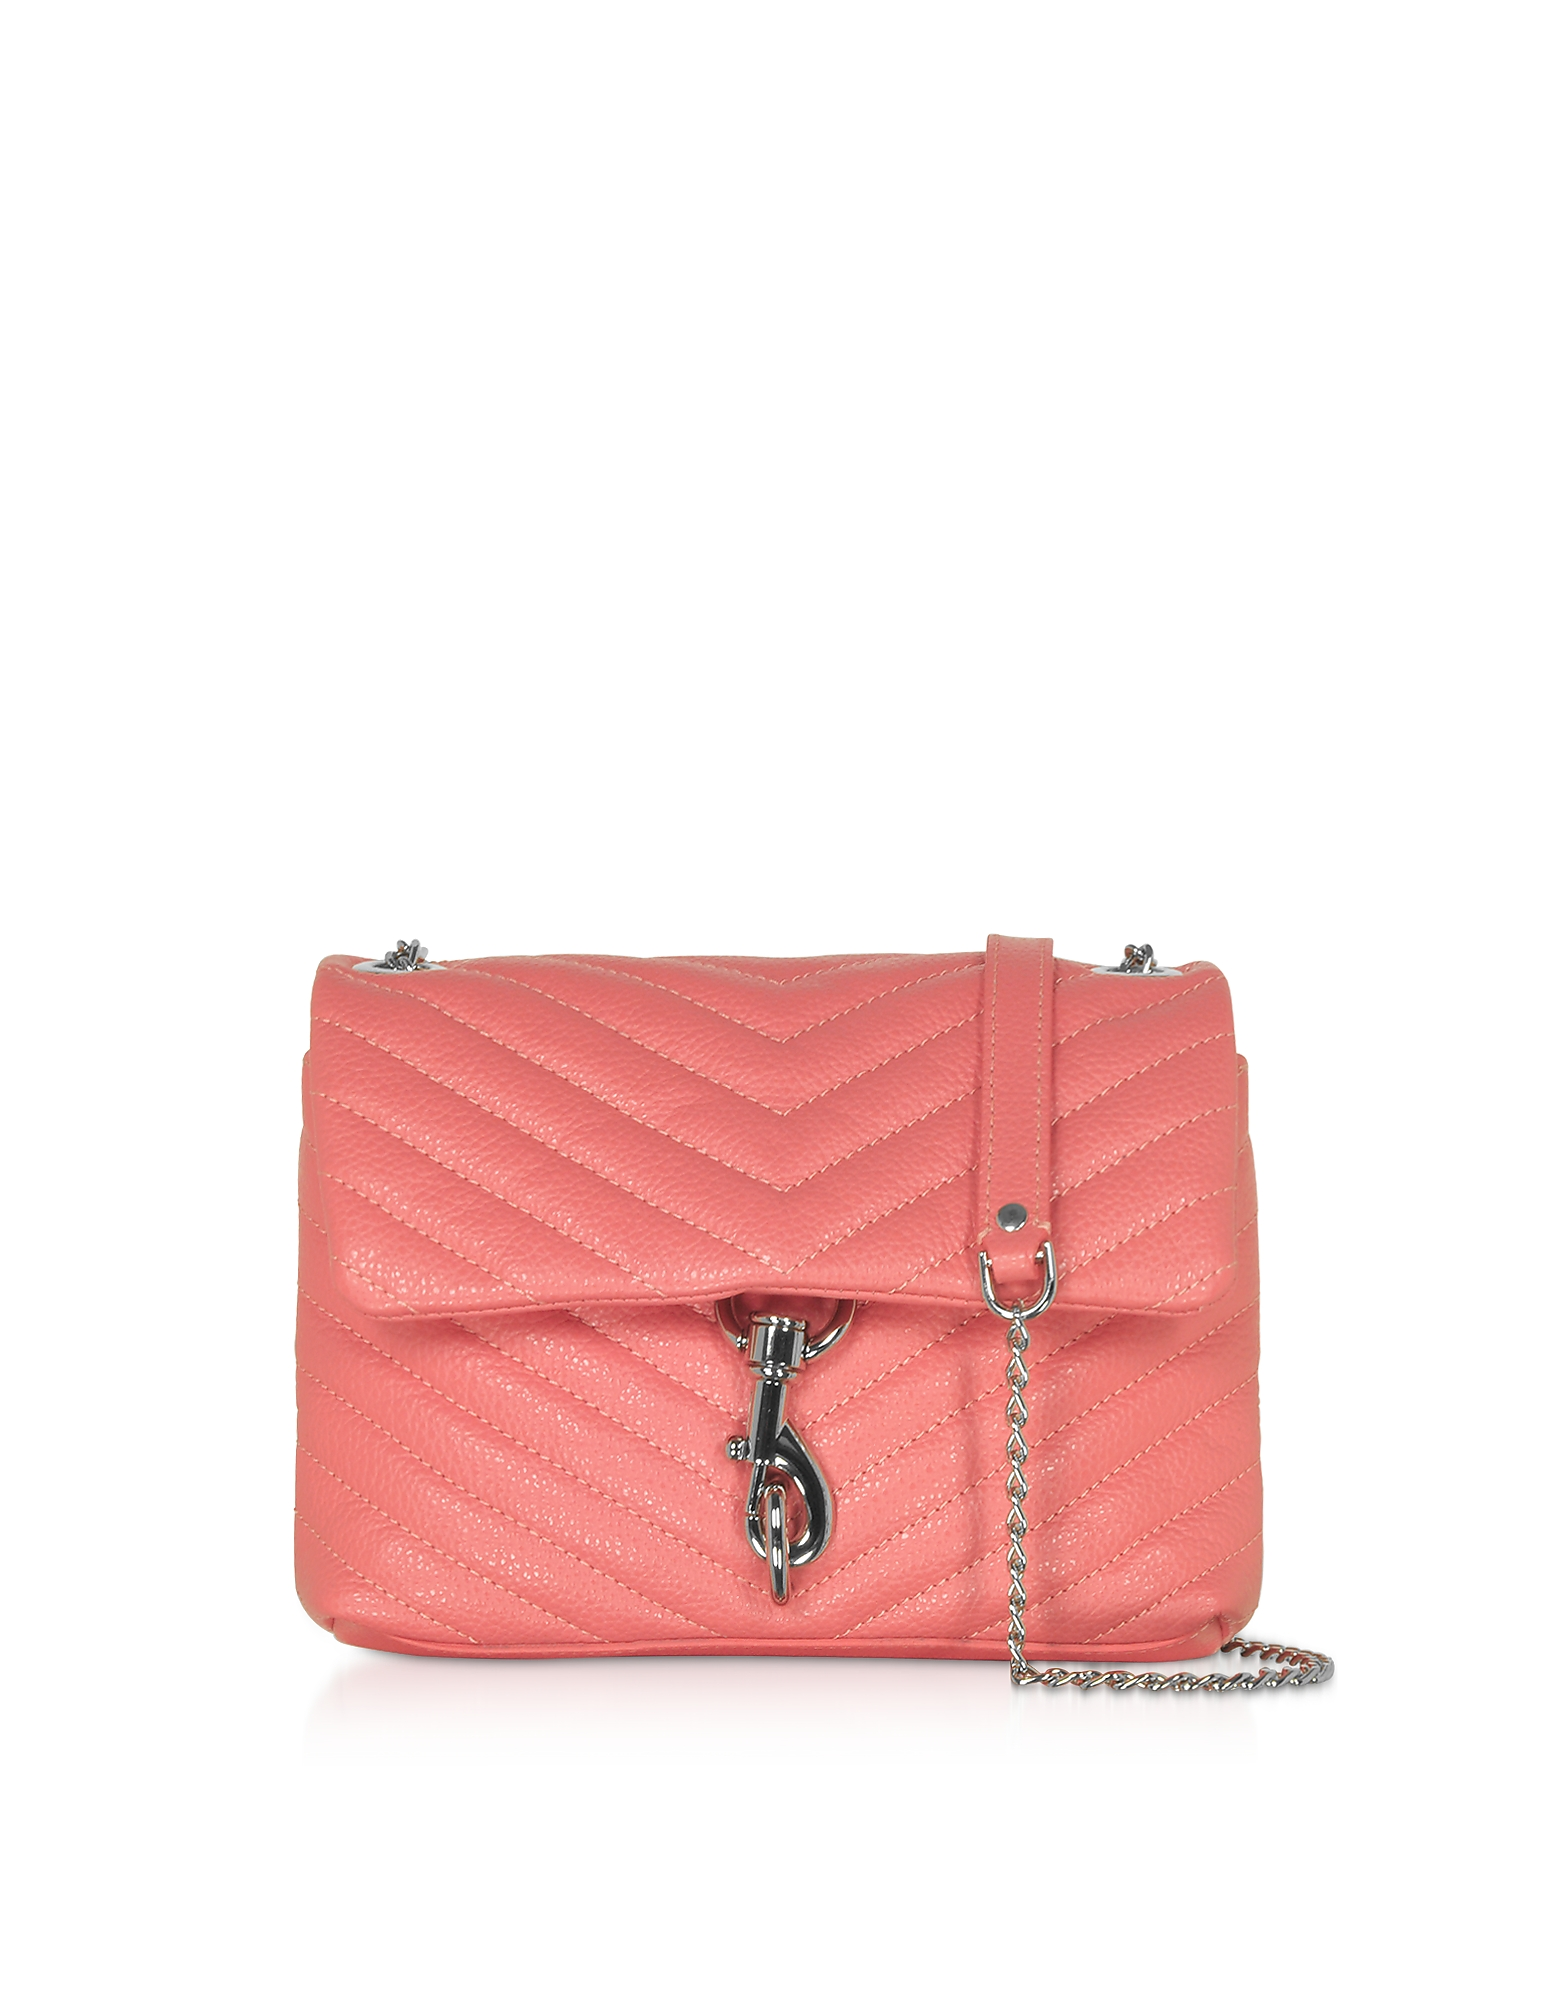 Rebecca Minkoff Designer Handbags, Quilted Leather Edie Xbody Bag